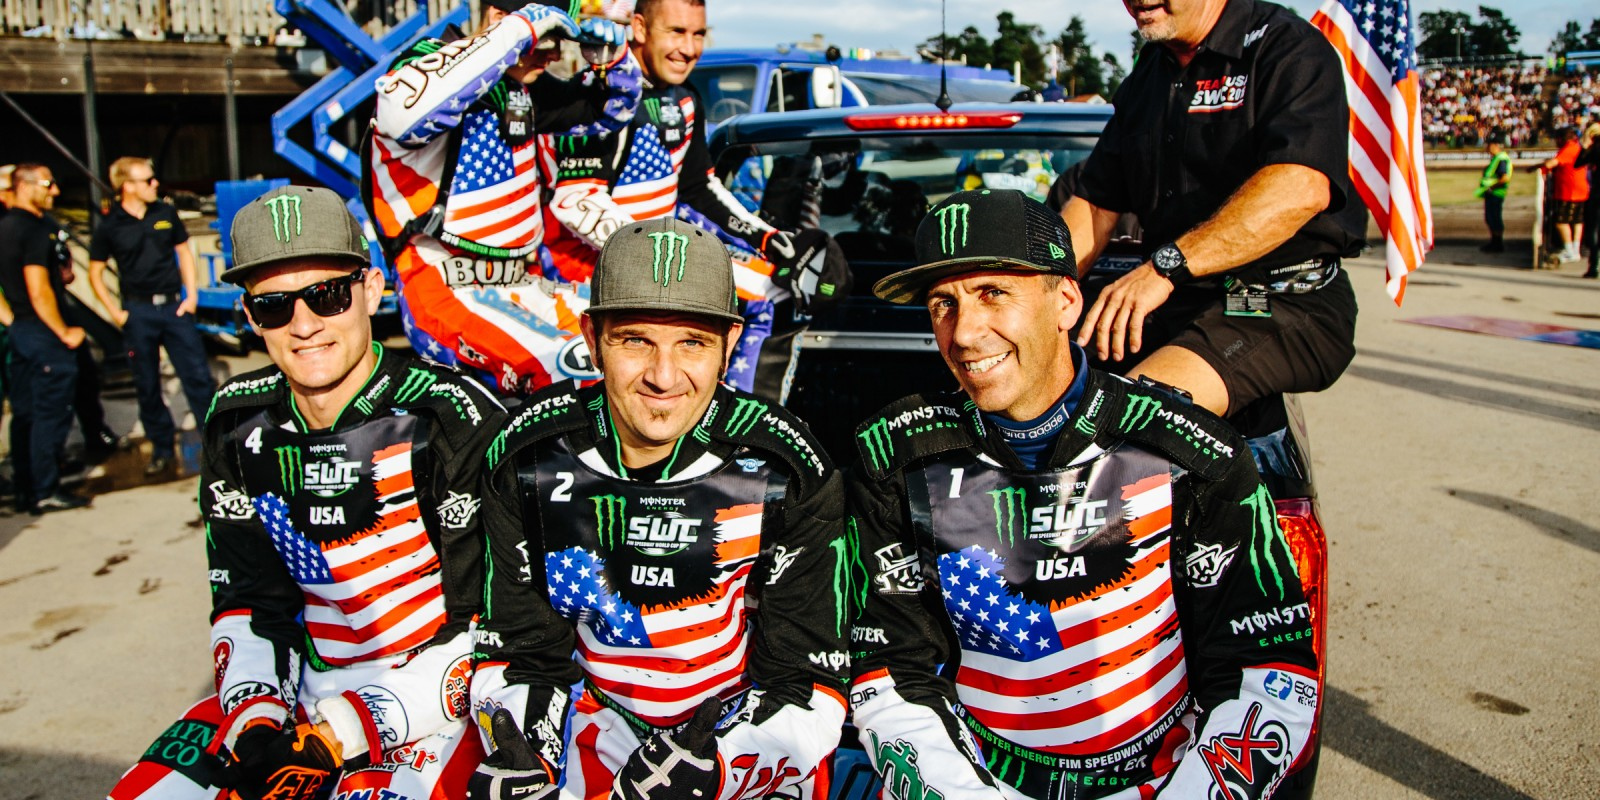 Images from Event Two of the Monster Energy Speedway World Cup